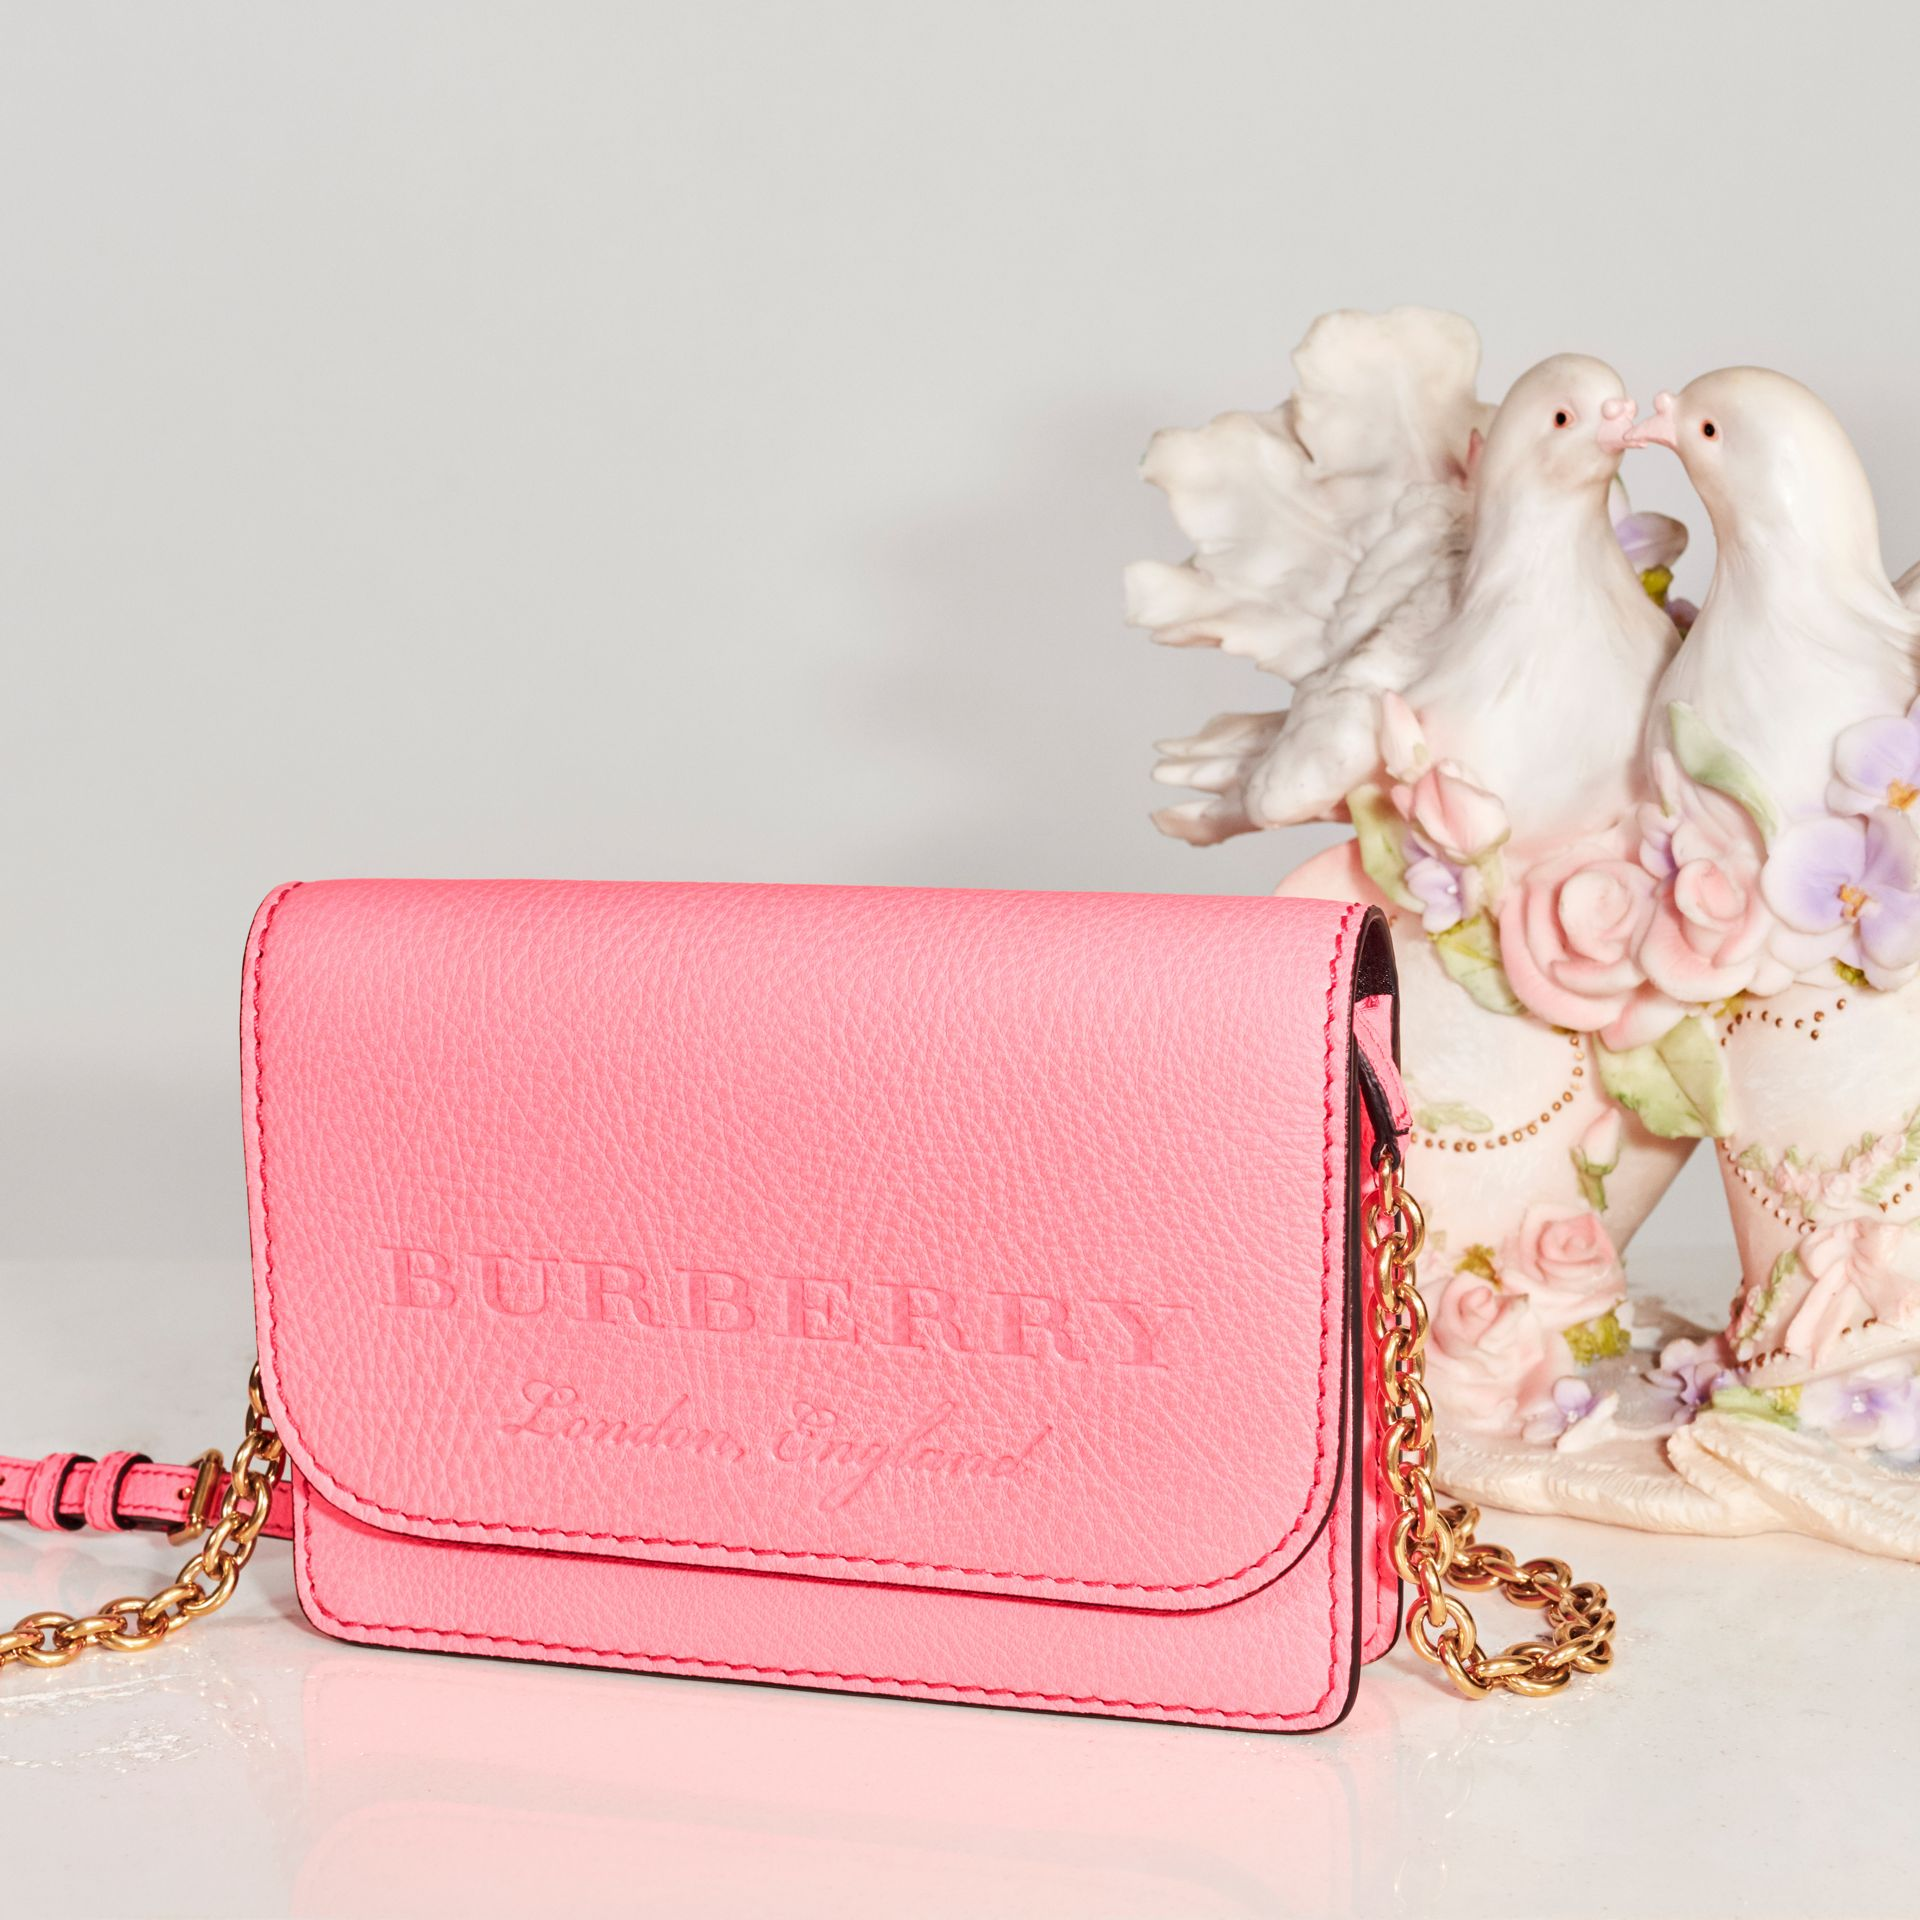 Embossed Leather Wallet with Detachable Strap in Bright Pink - Women | Burberry - gallery image 7